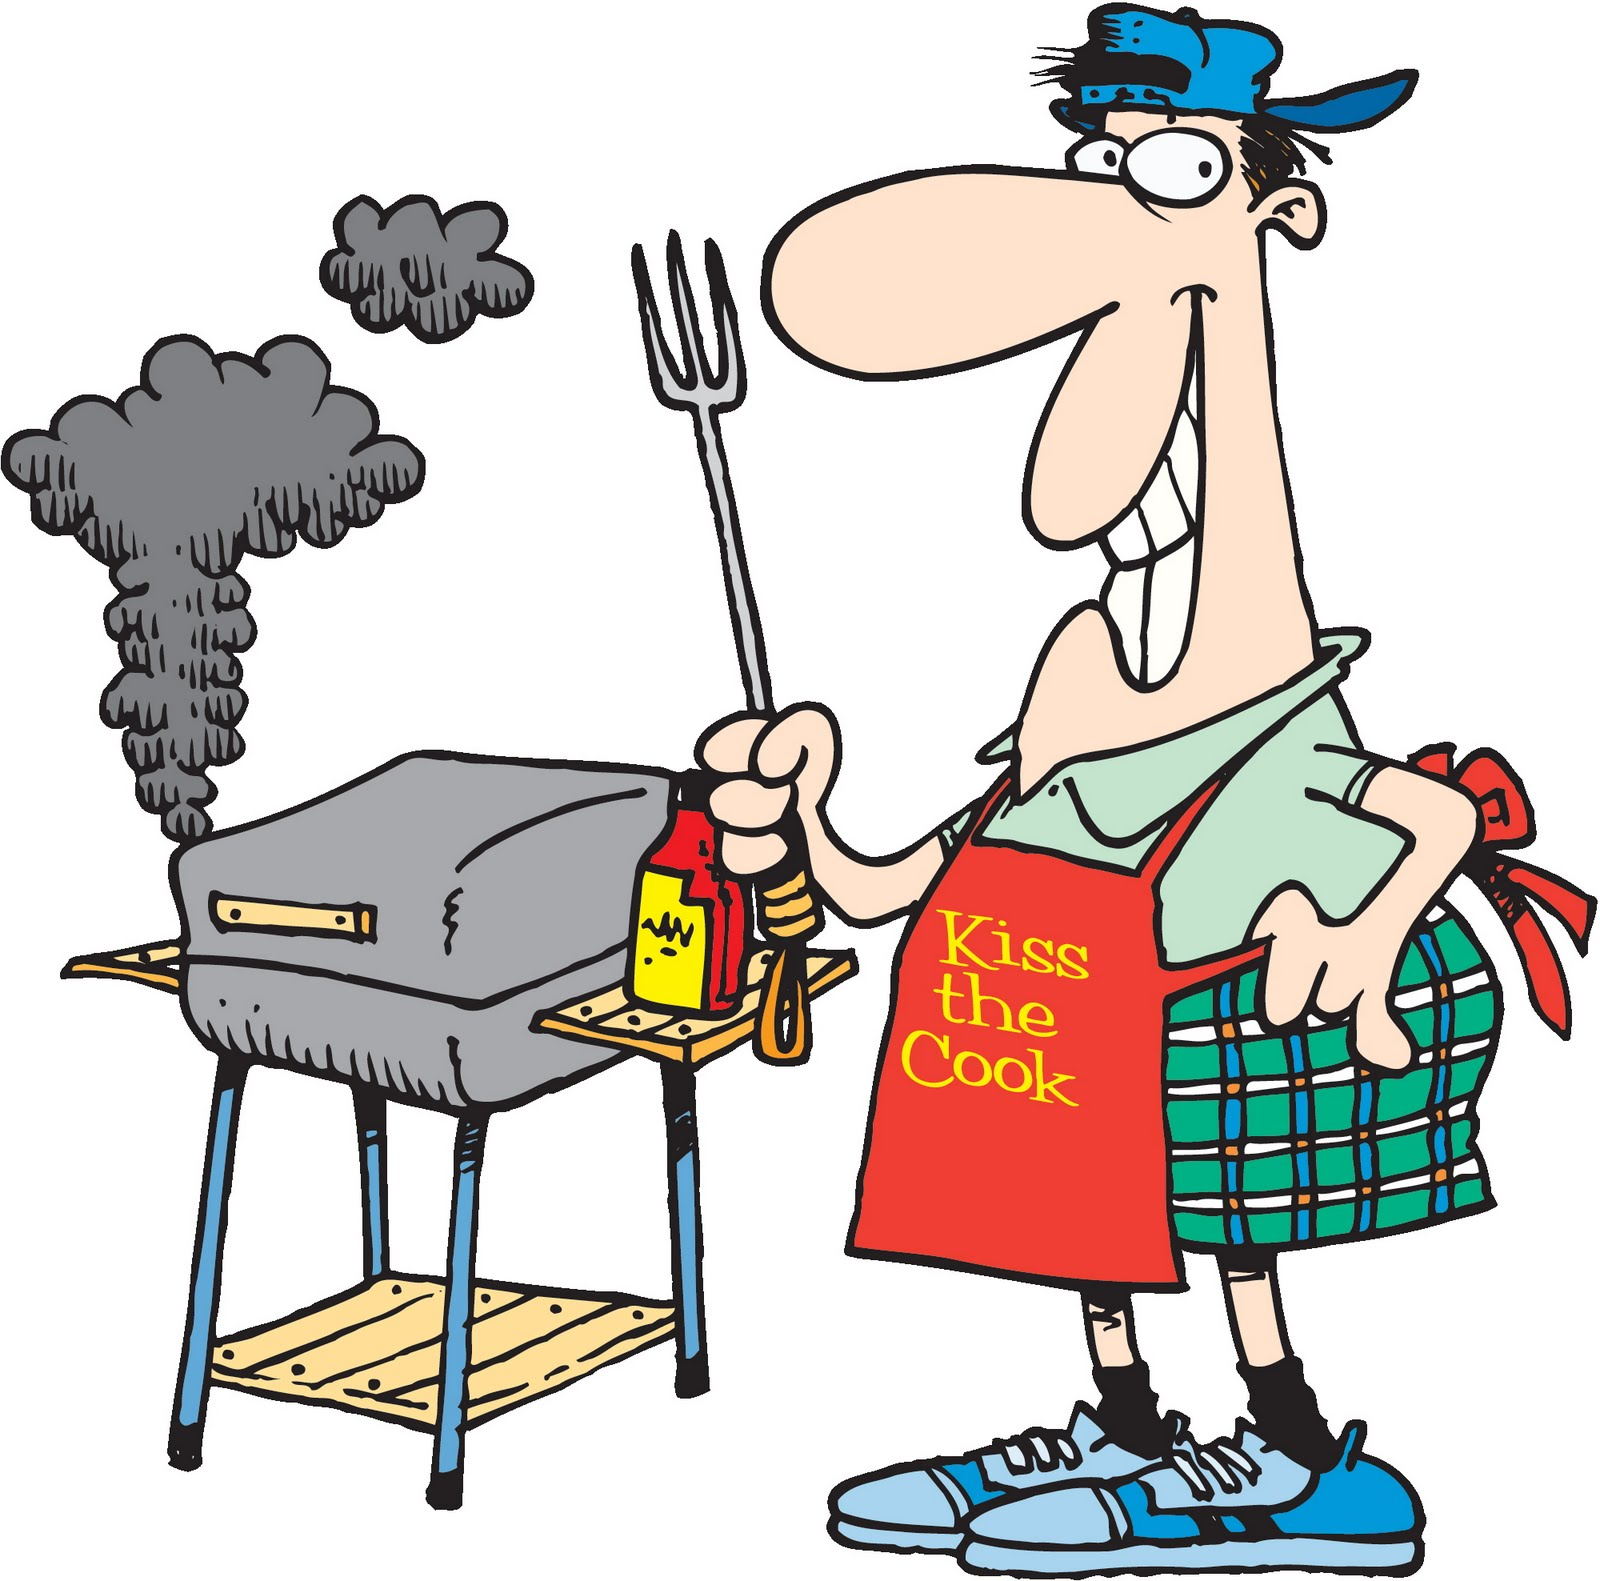 Bbq party clipart free clipart images 2.